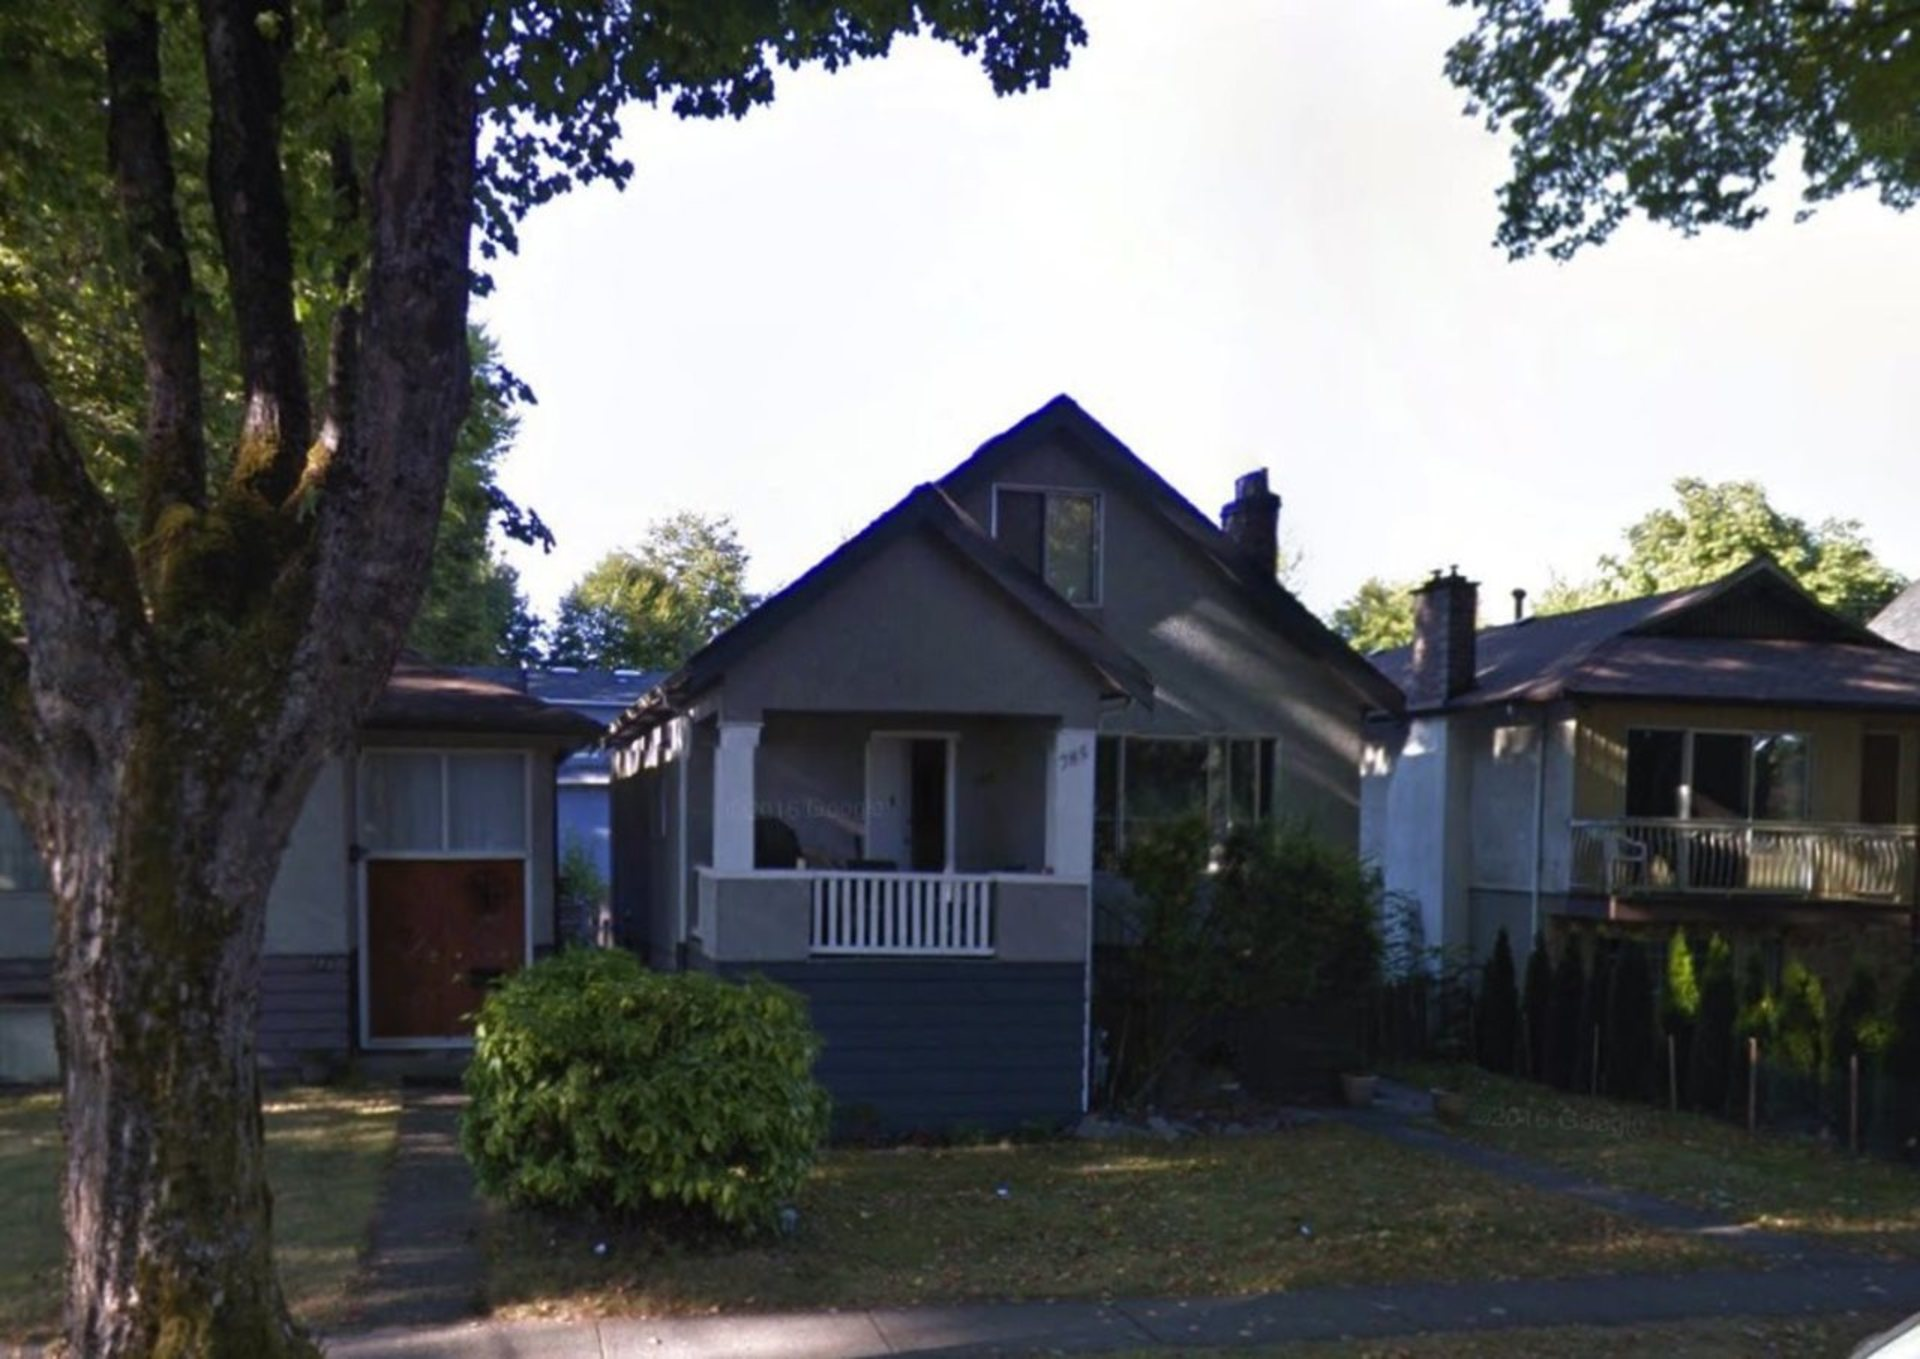 785-w-20th-avenue-cambie-vancouver-west-02 at 785 W 20th Avenue, Cambie, Vancouver West